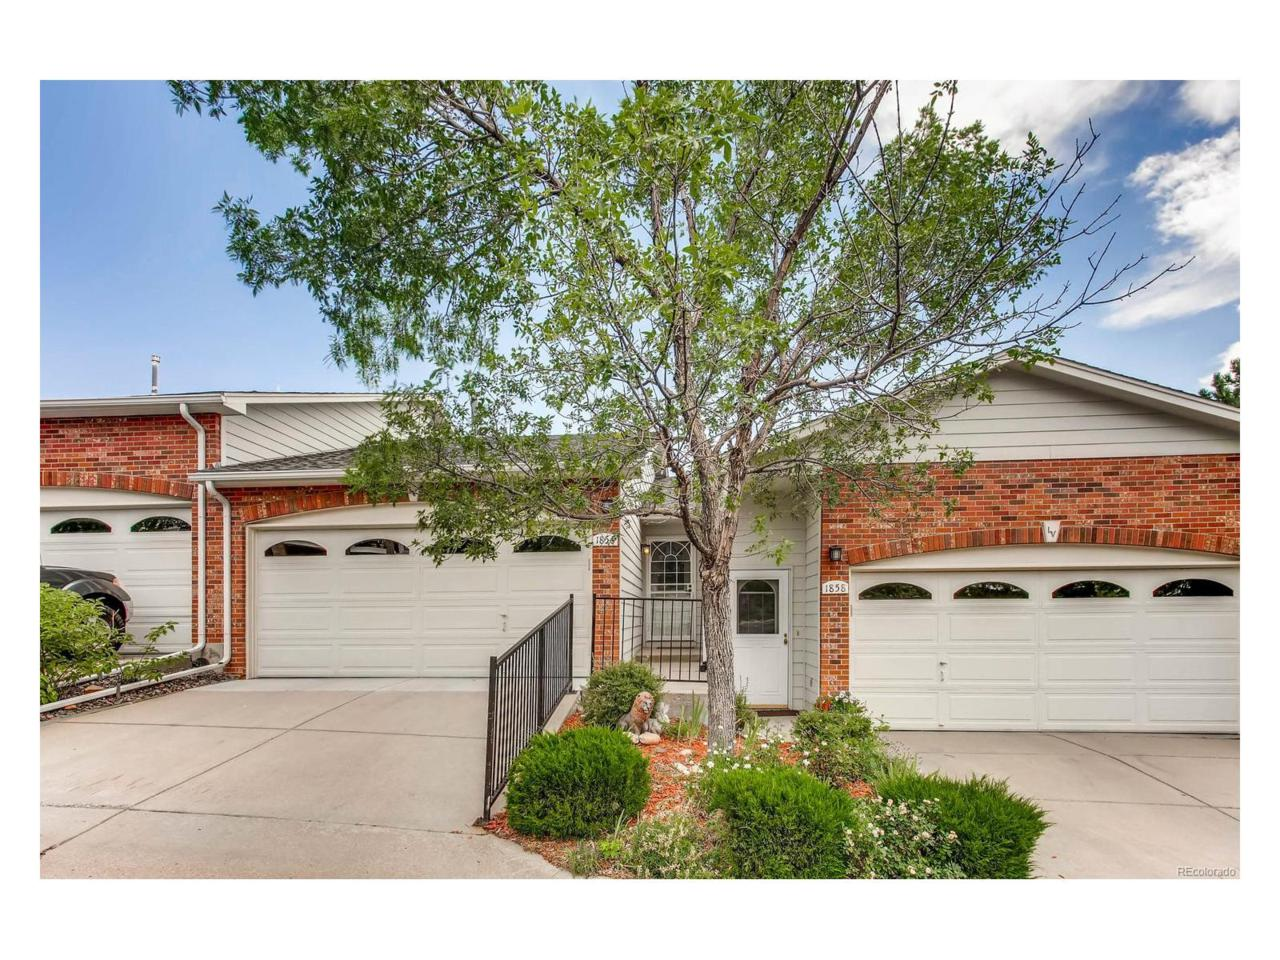 1856 S Cole Street, Lakewood, CO 80228 (MLS #5550457) :: 8z Real Estate